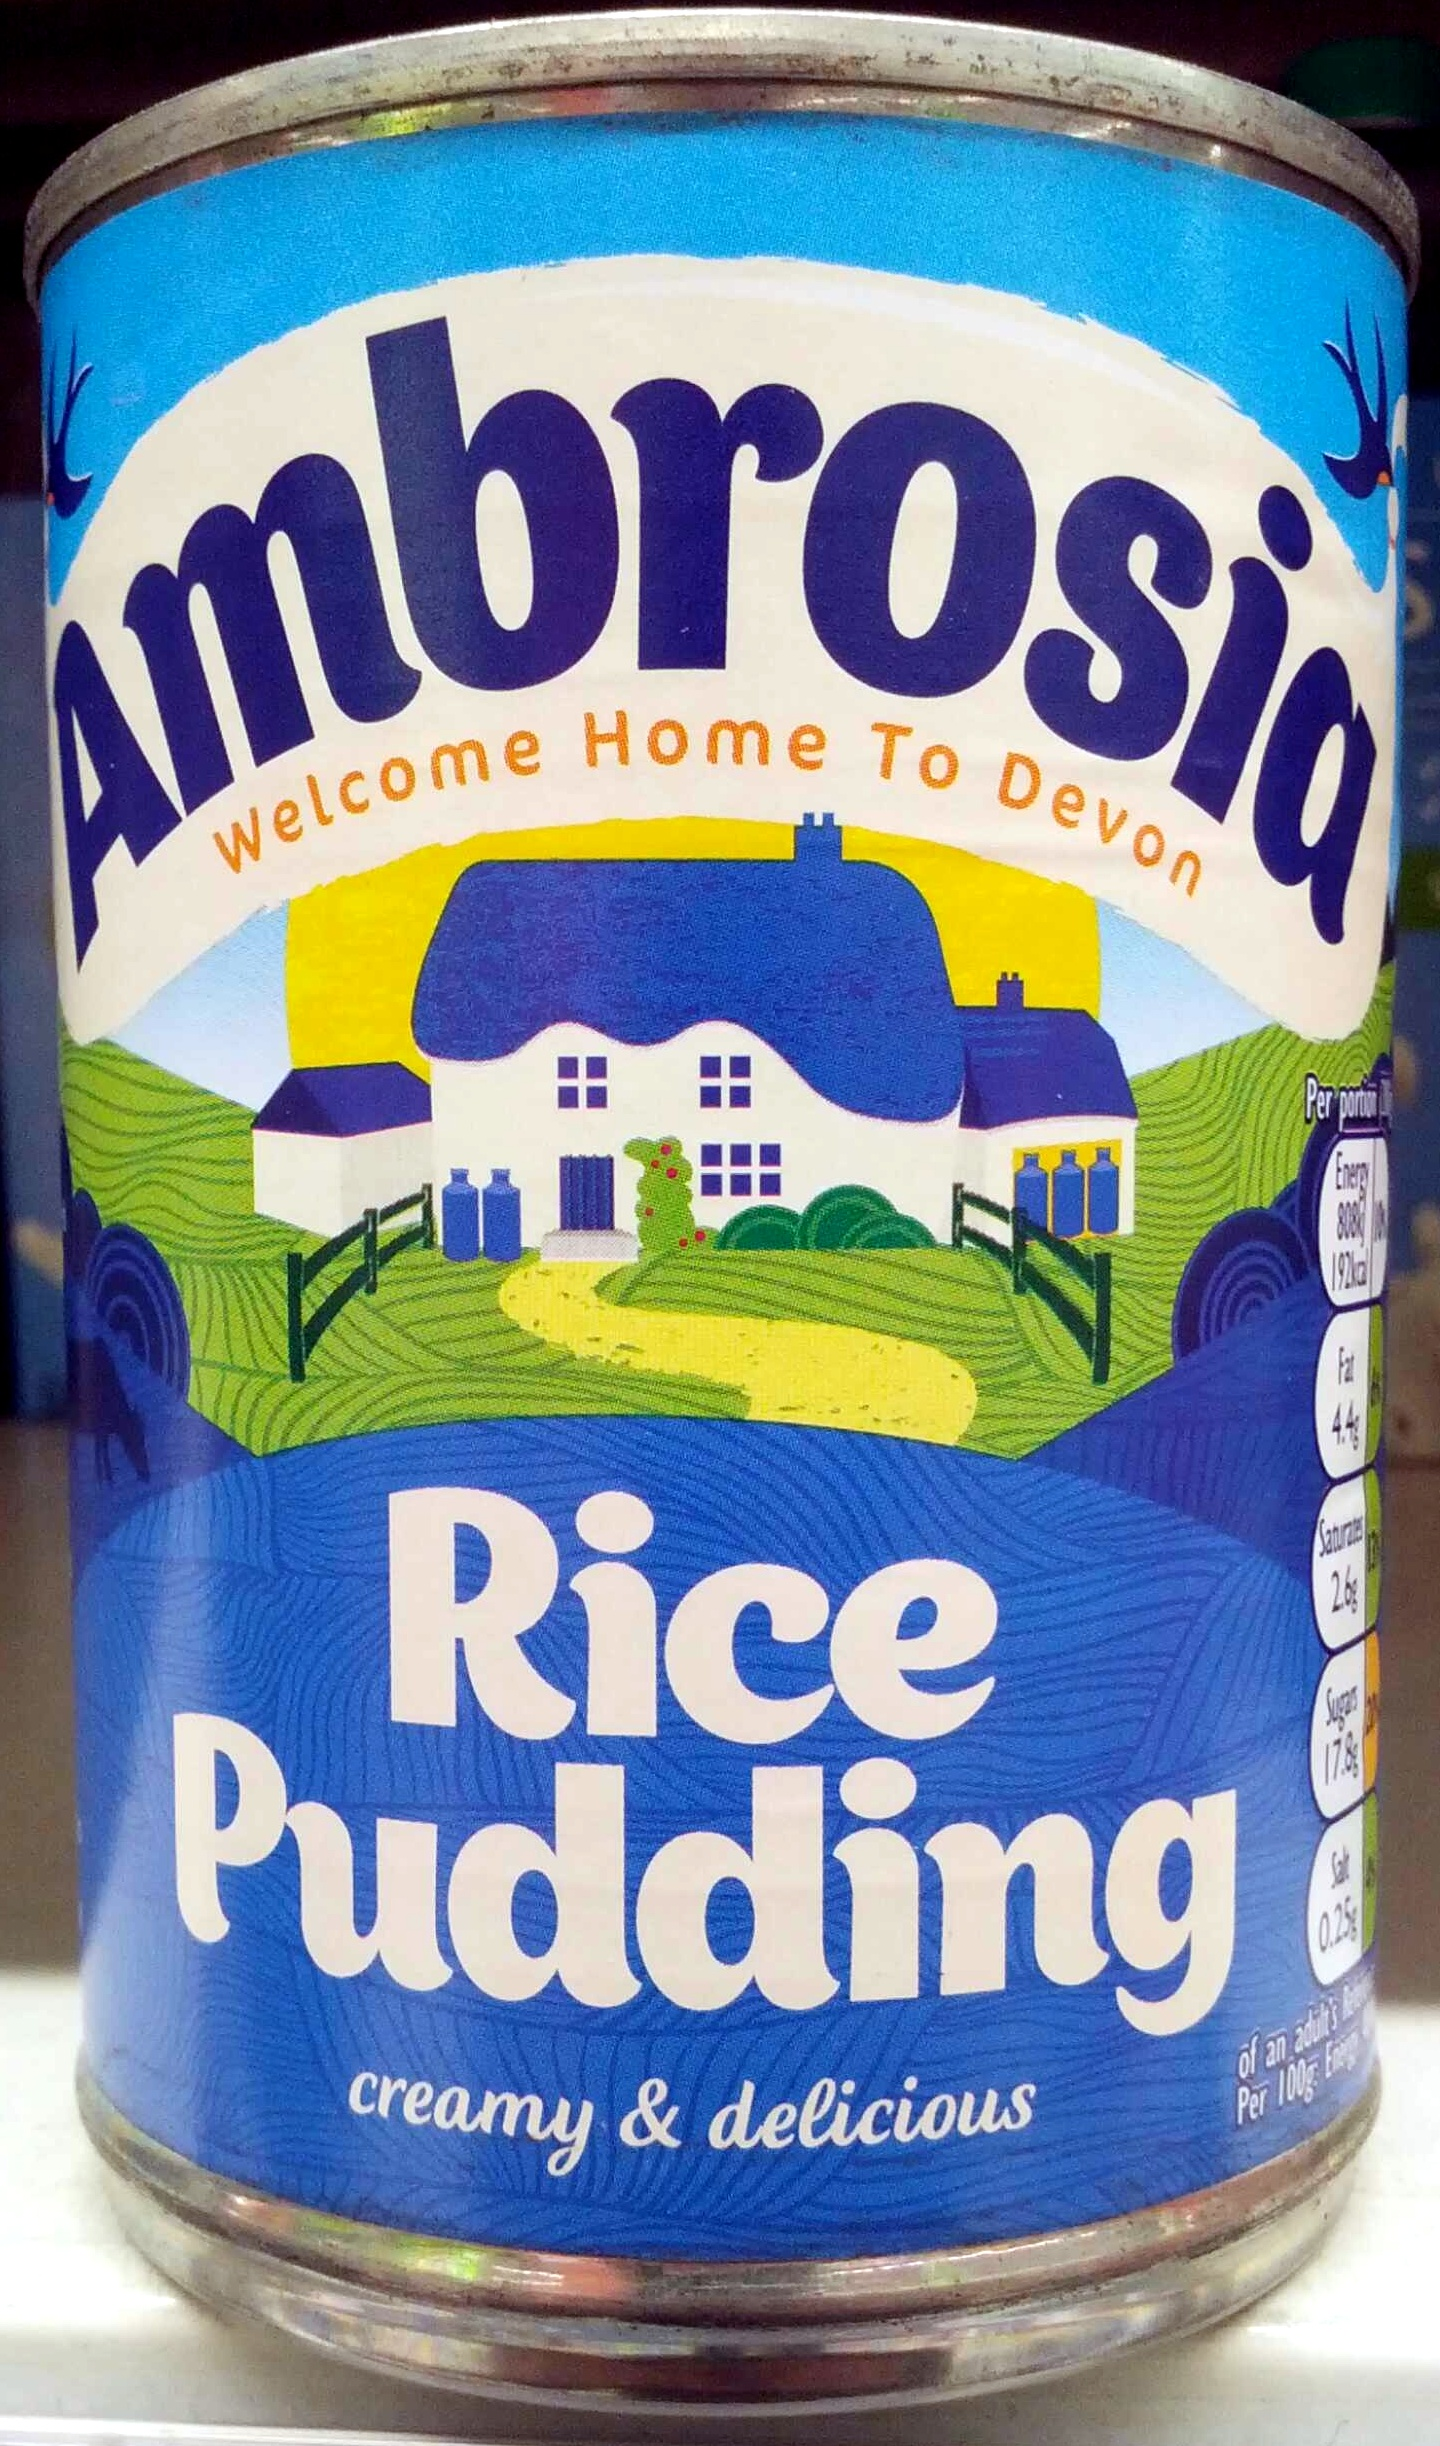 Rice pudding - Product - en